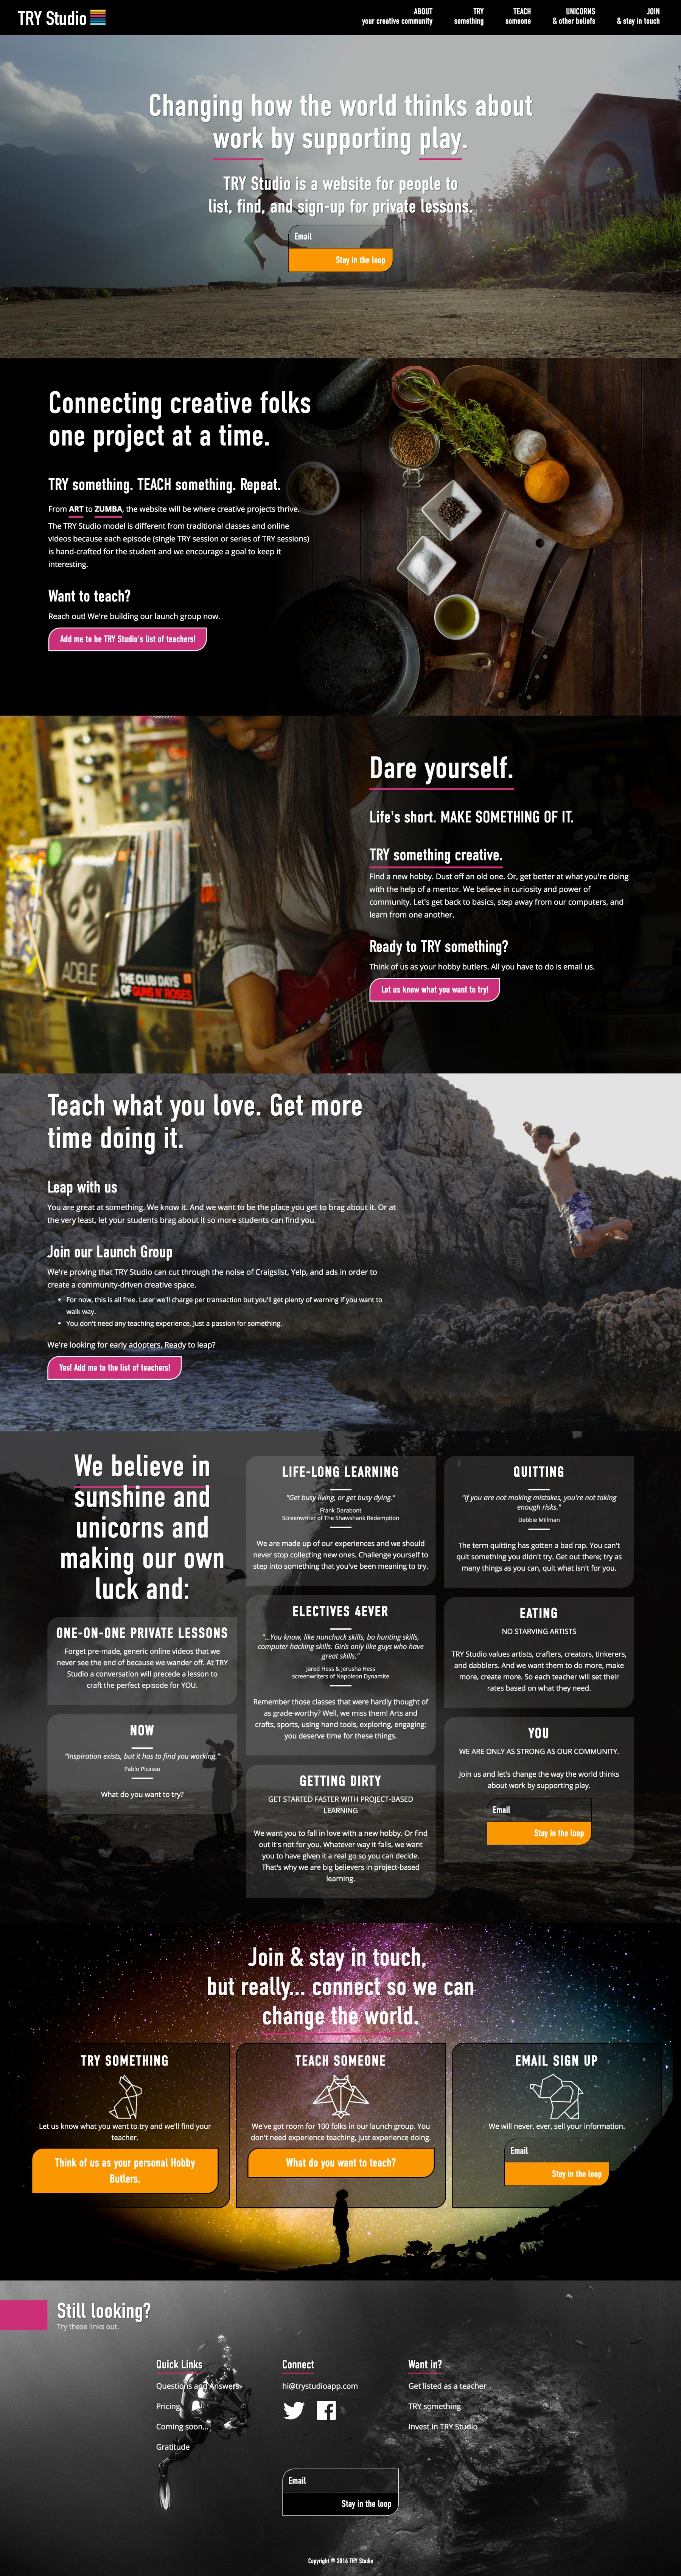 TRY Studio Home Page